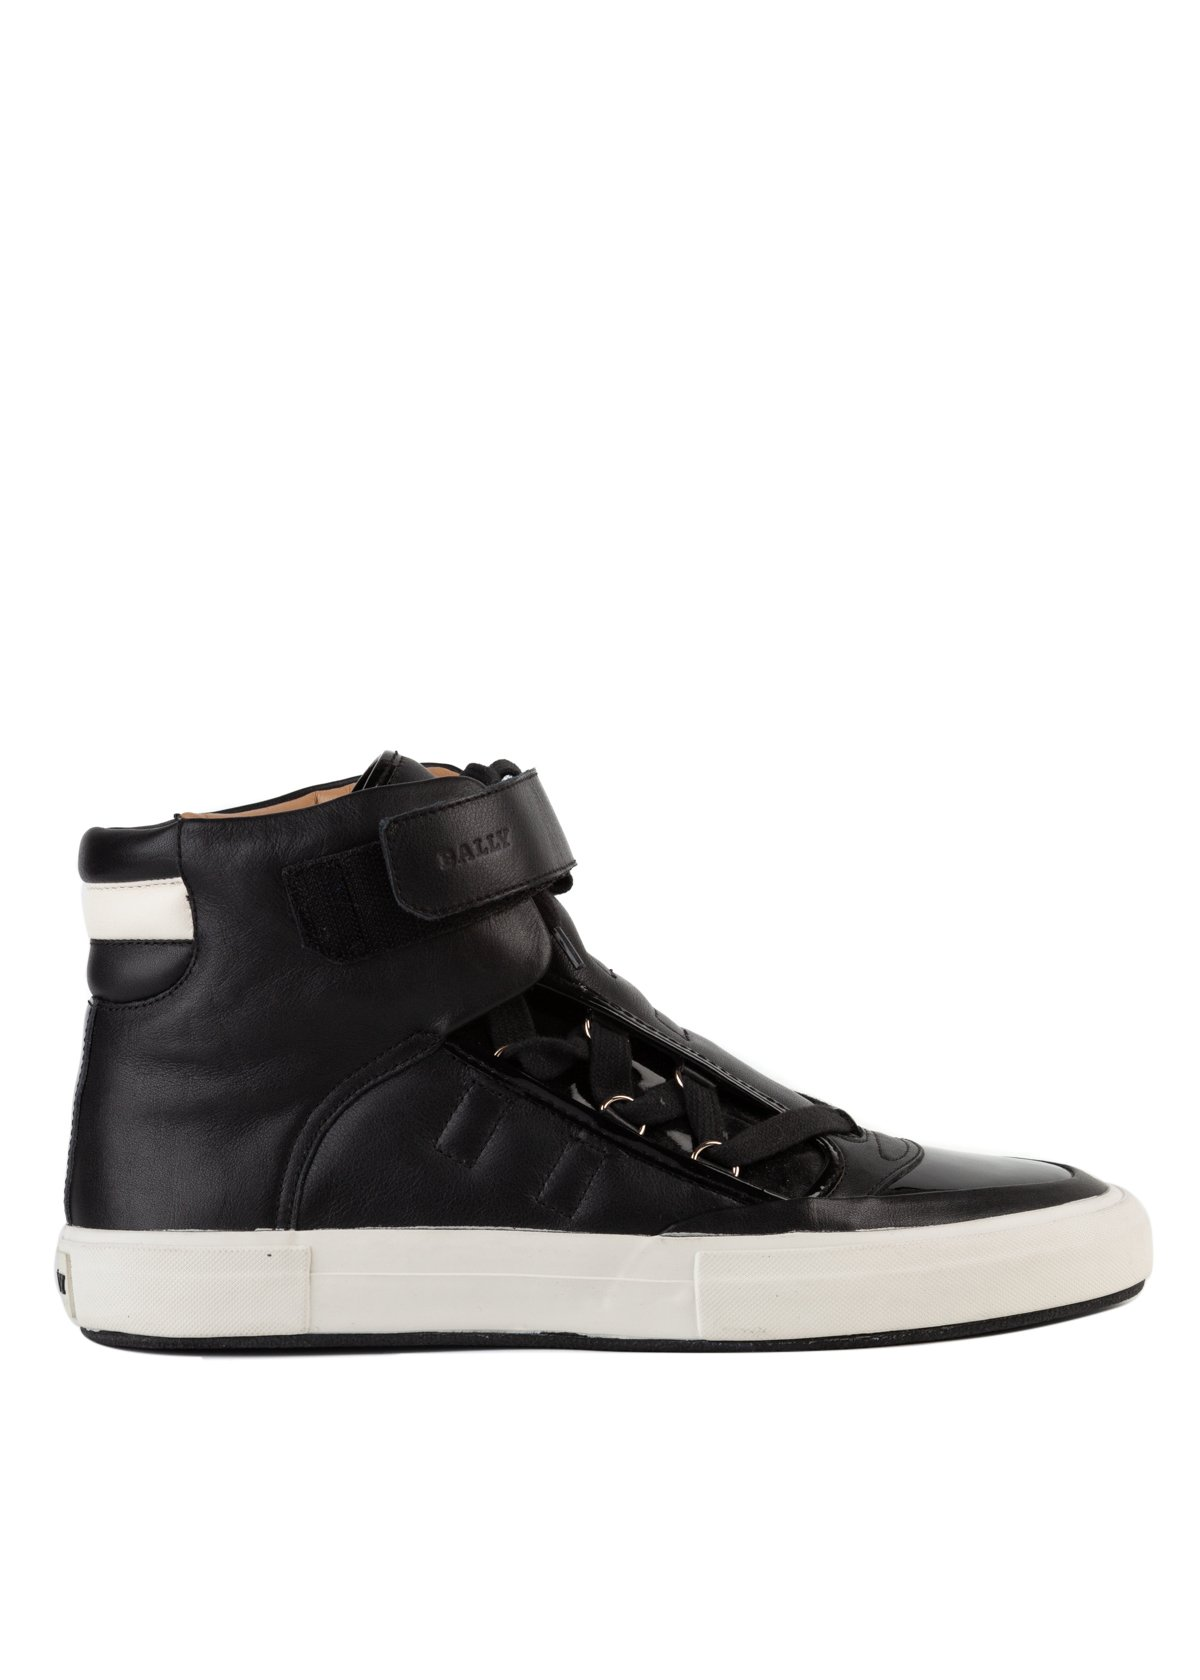 mens all black leather sneakers